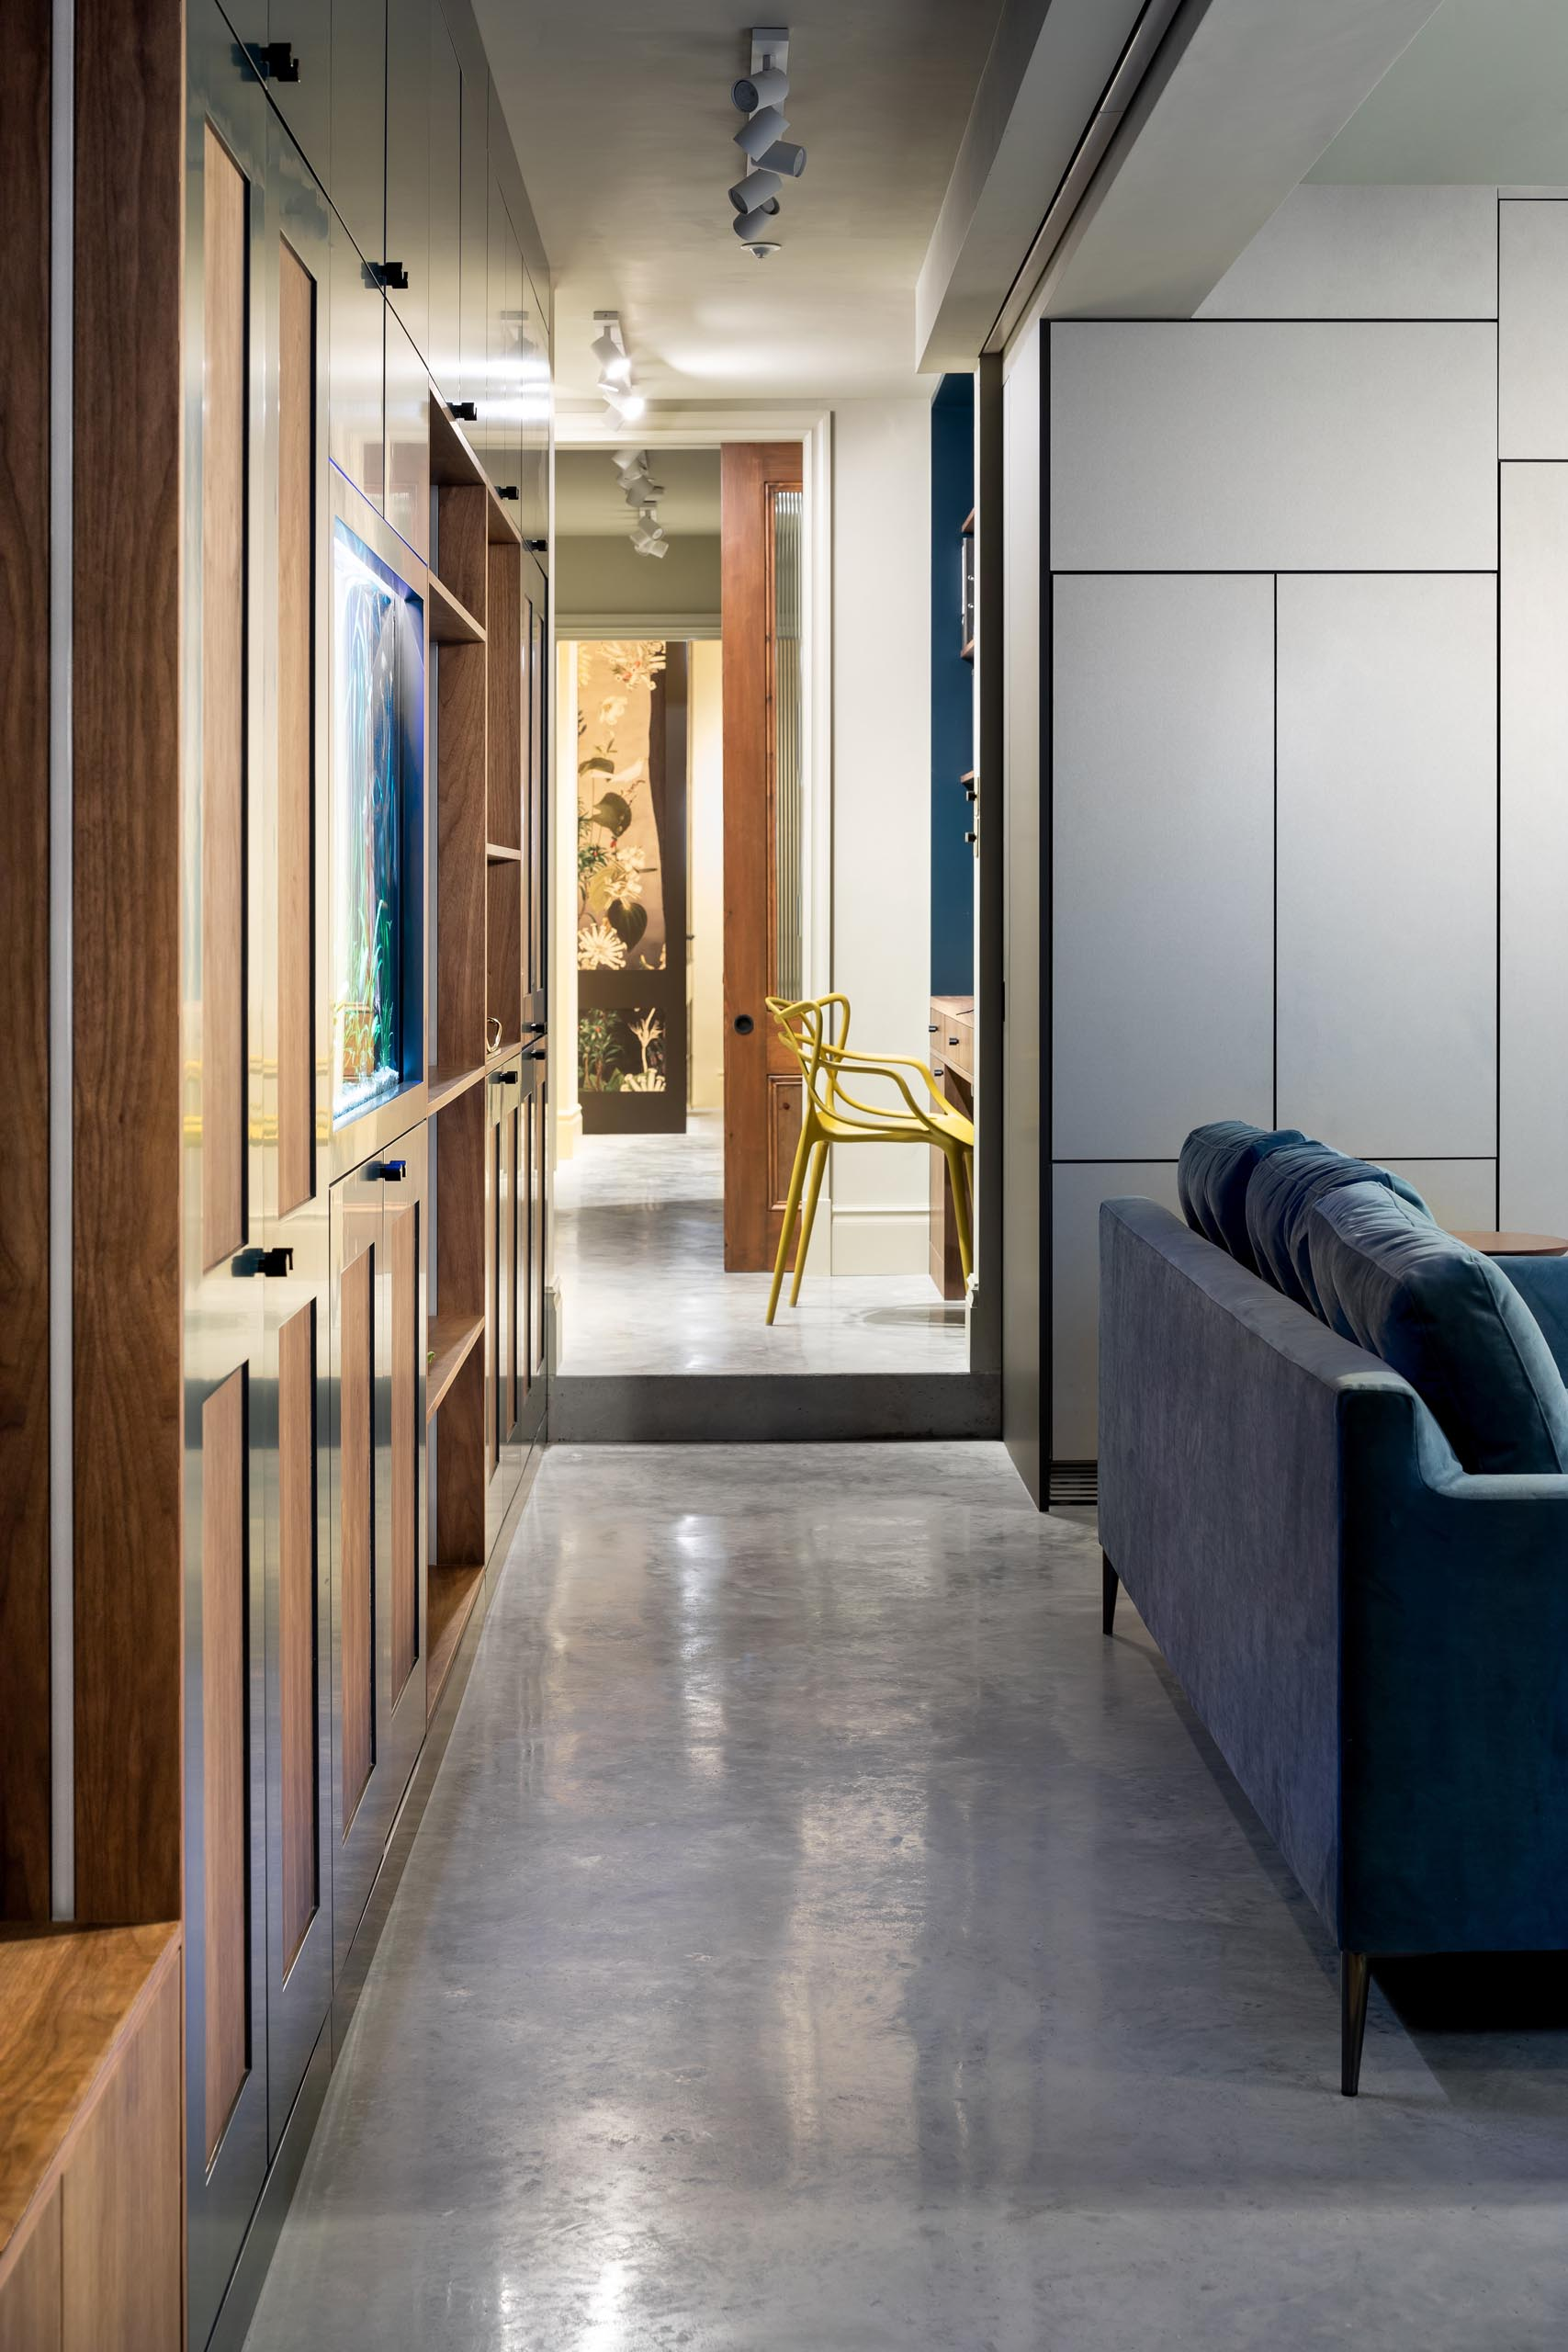 A modern hallway with polished concrete floors and lined with cabinetry and a home office.